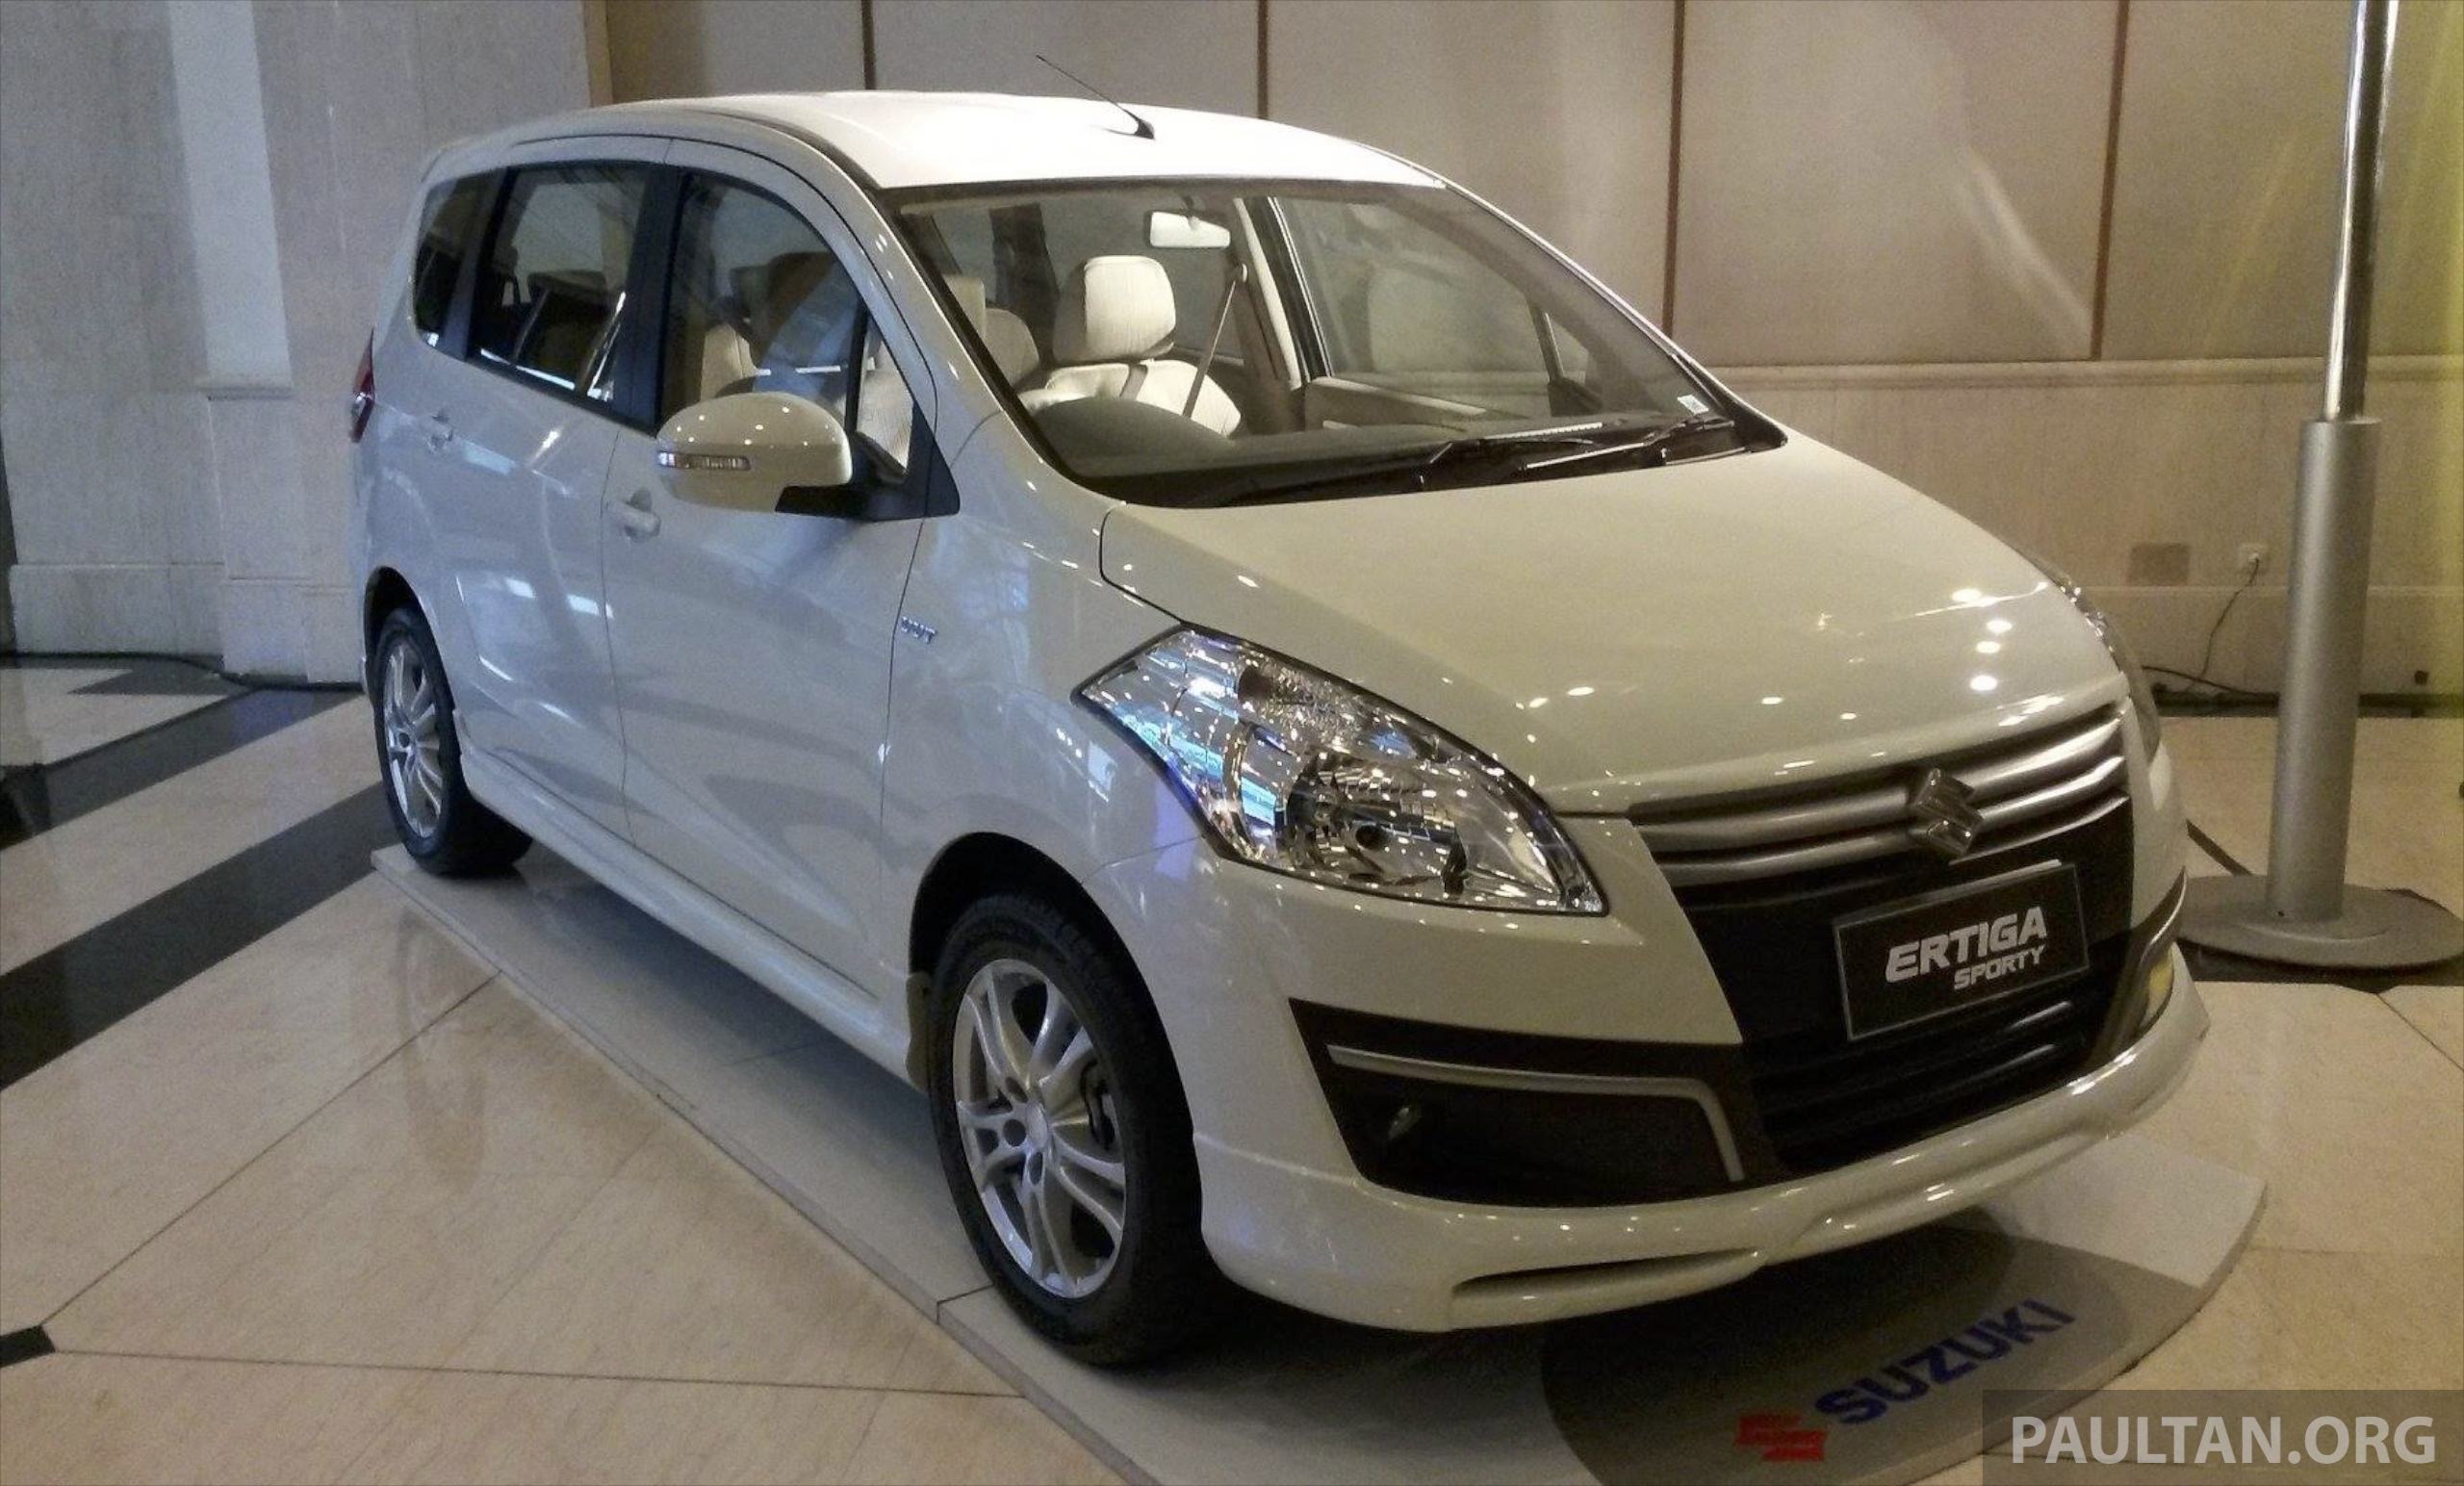 suzuki ertiga sporty introduced in indonesia image 229575